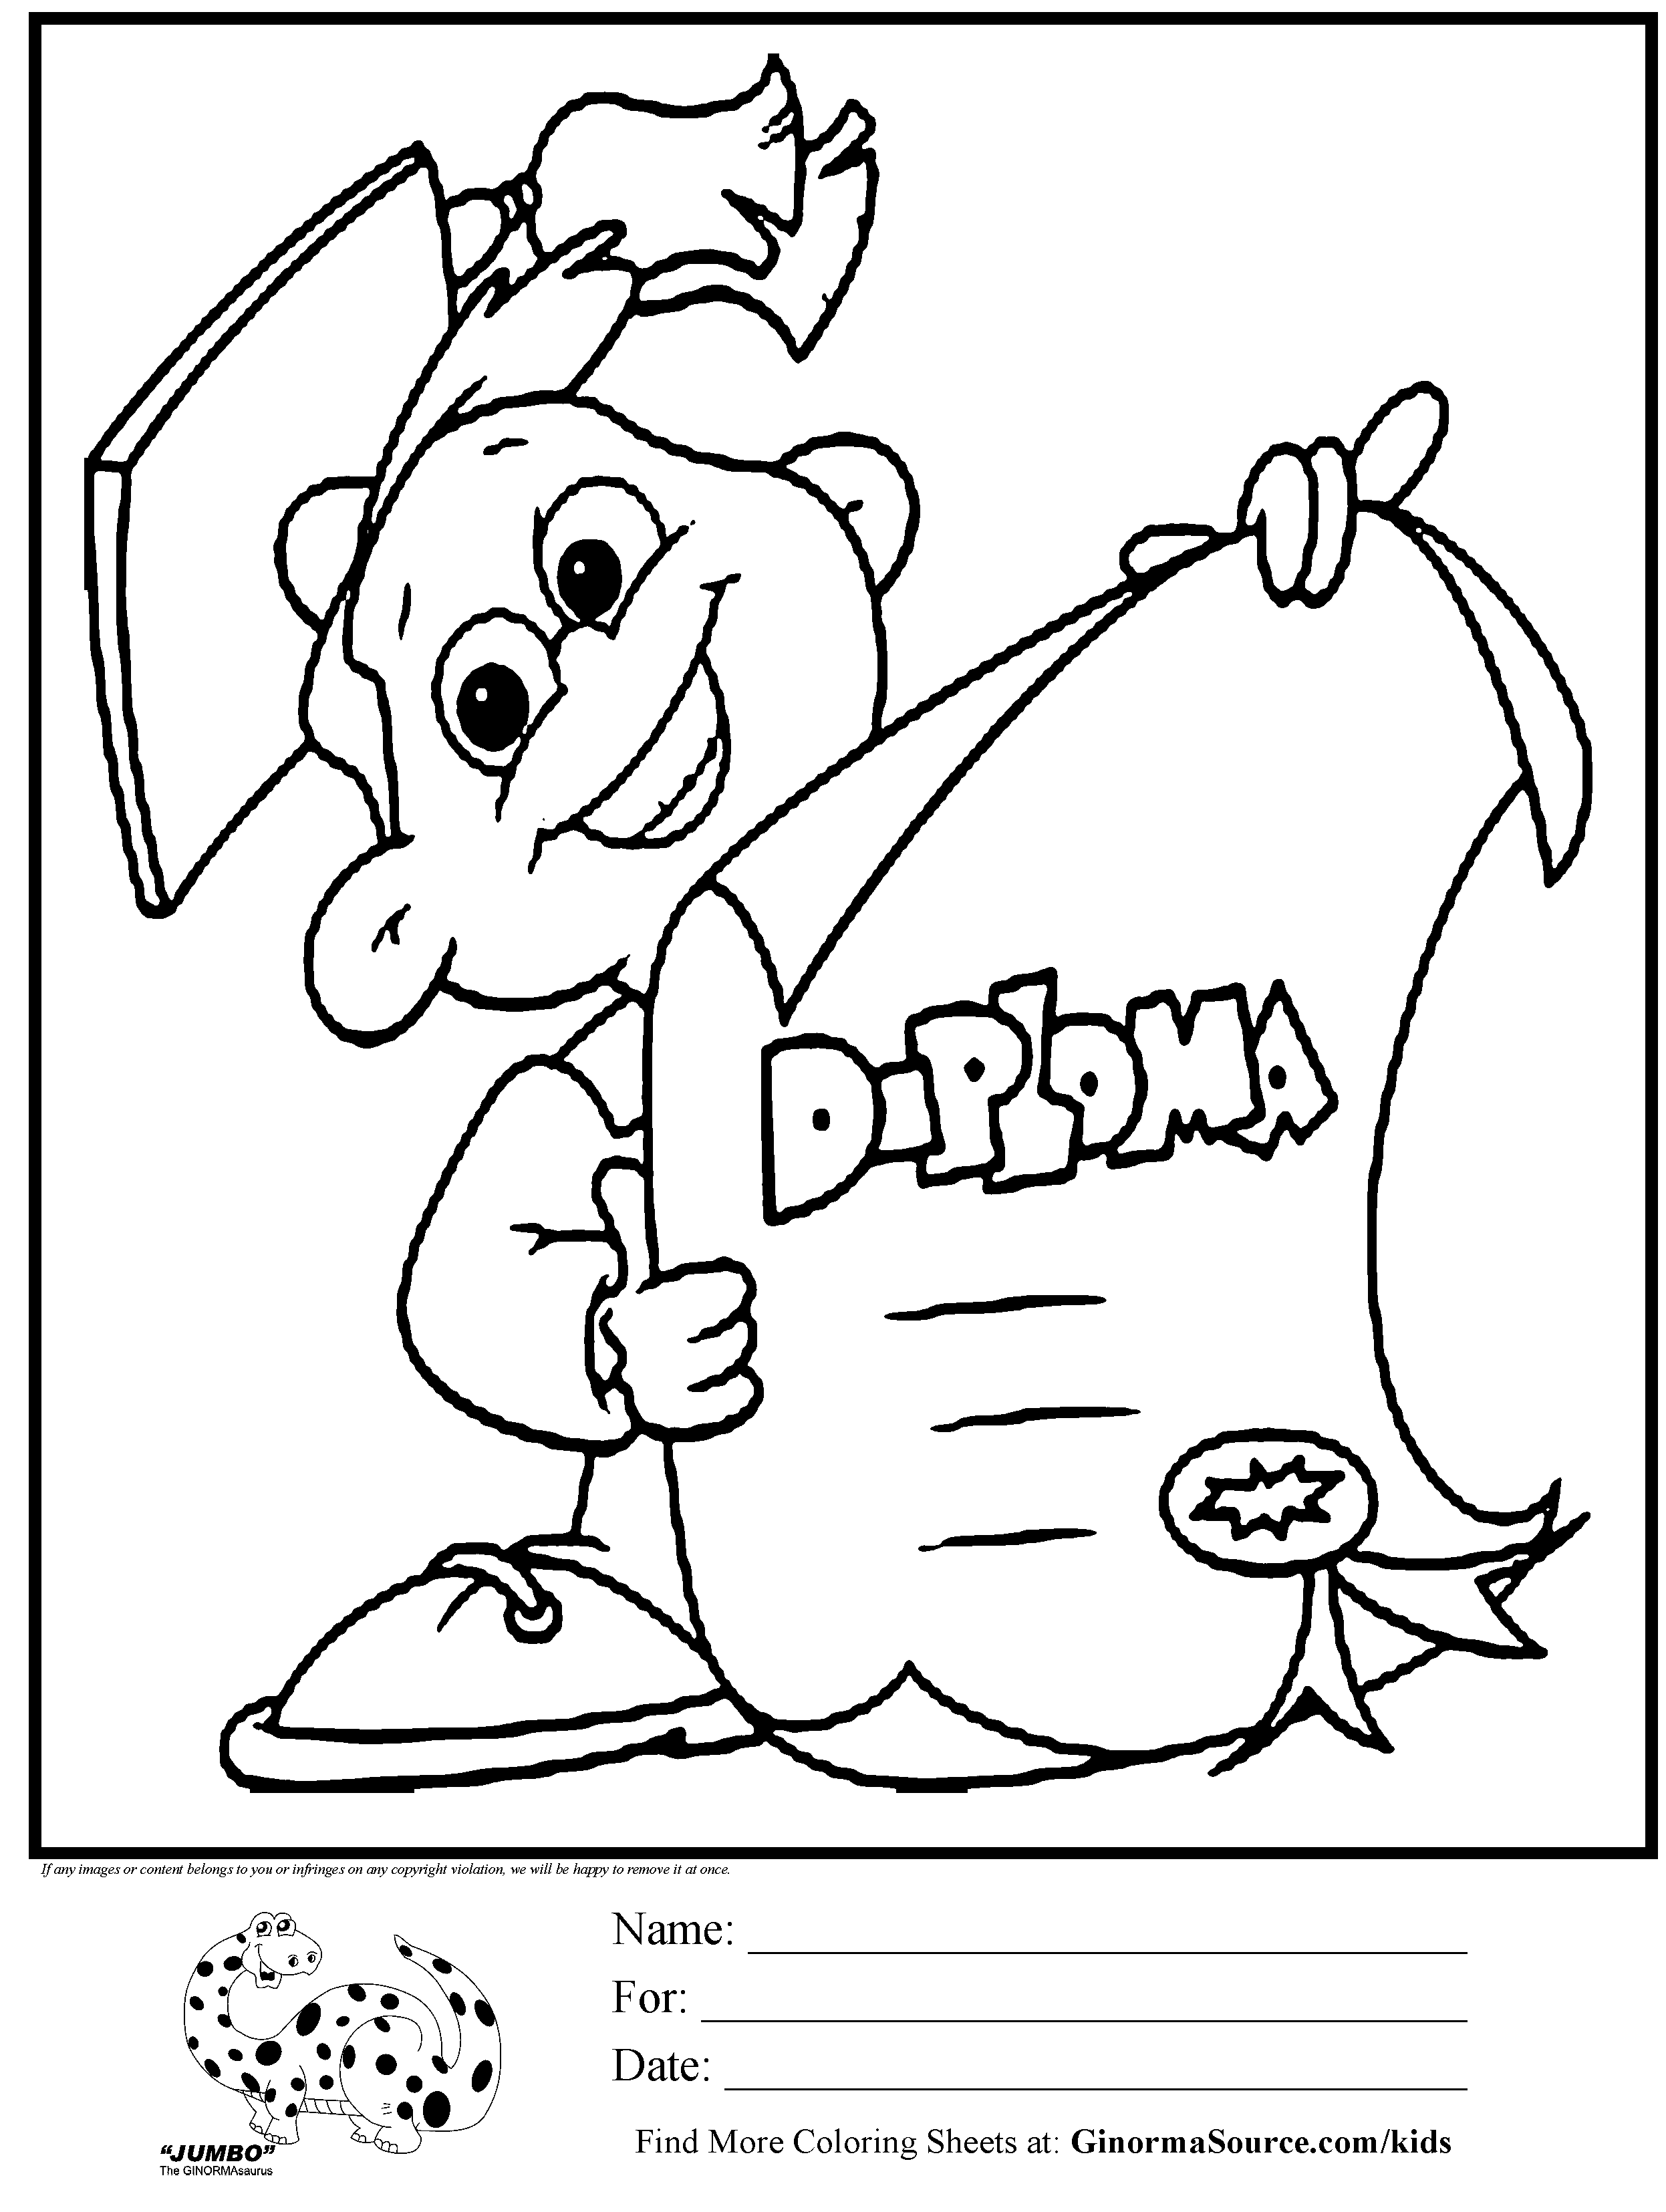 Kindergarten Diploma Coloring Page